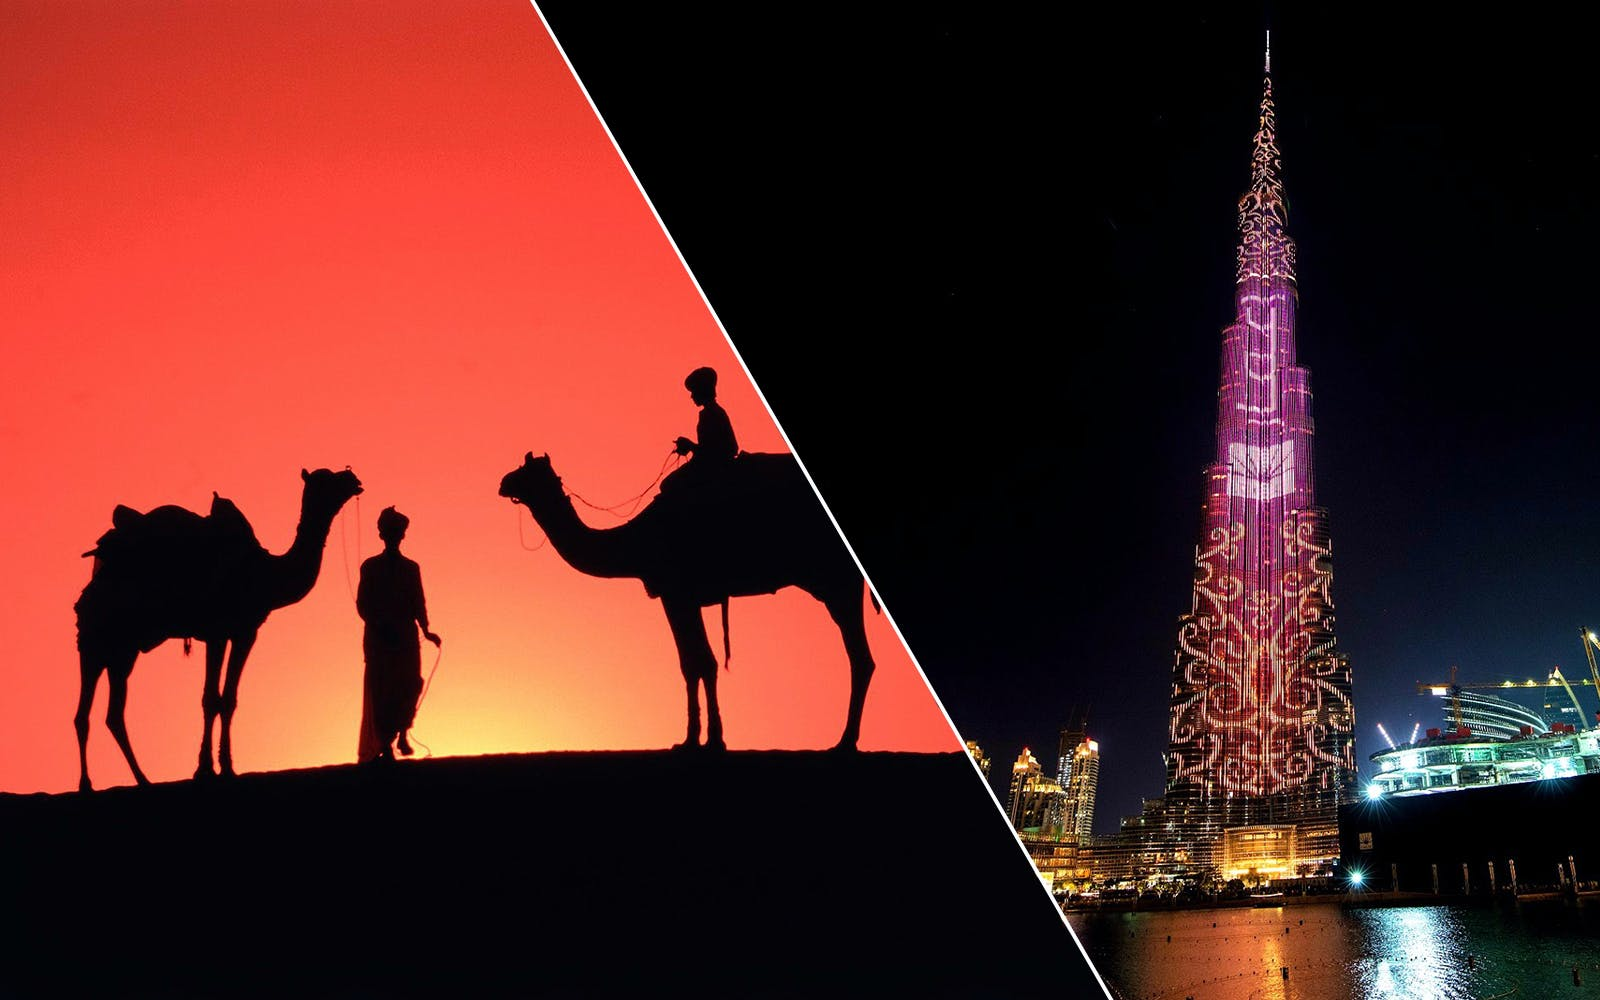 2 Day Combo: Burj Khalifa + Dubai Aquarium + Desert Safari + Dhow Dinner Cruise